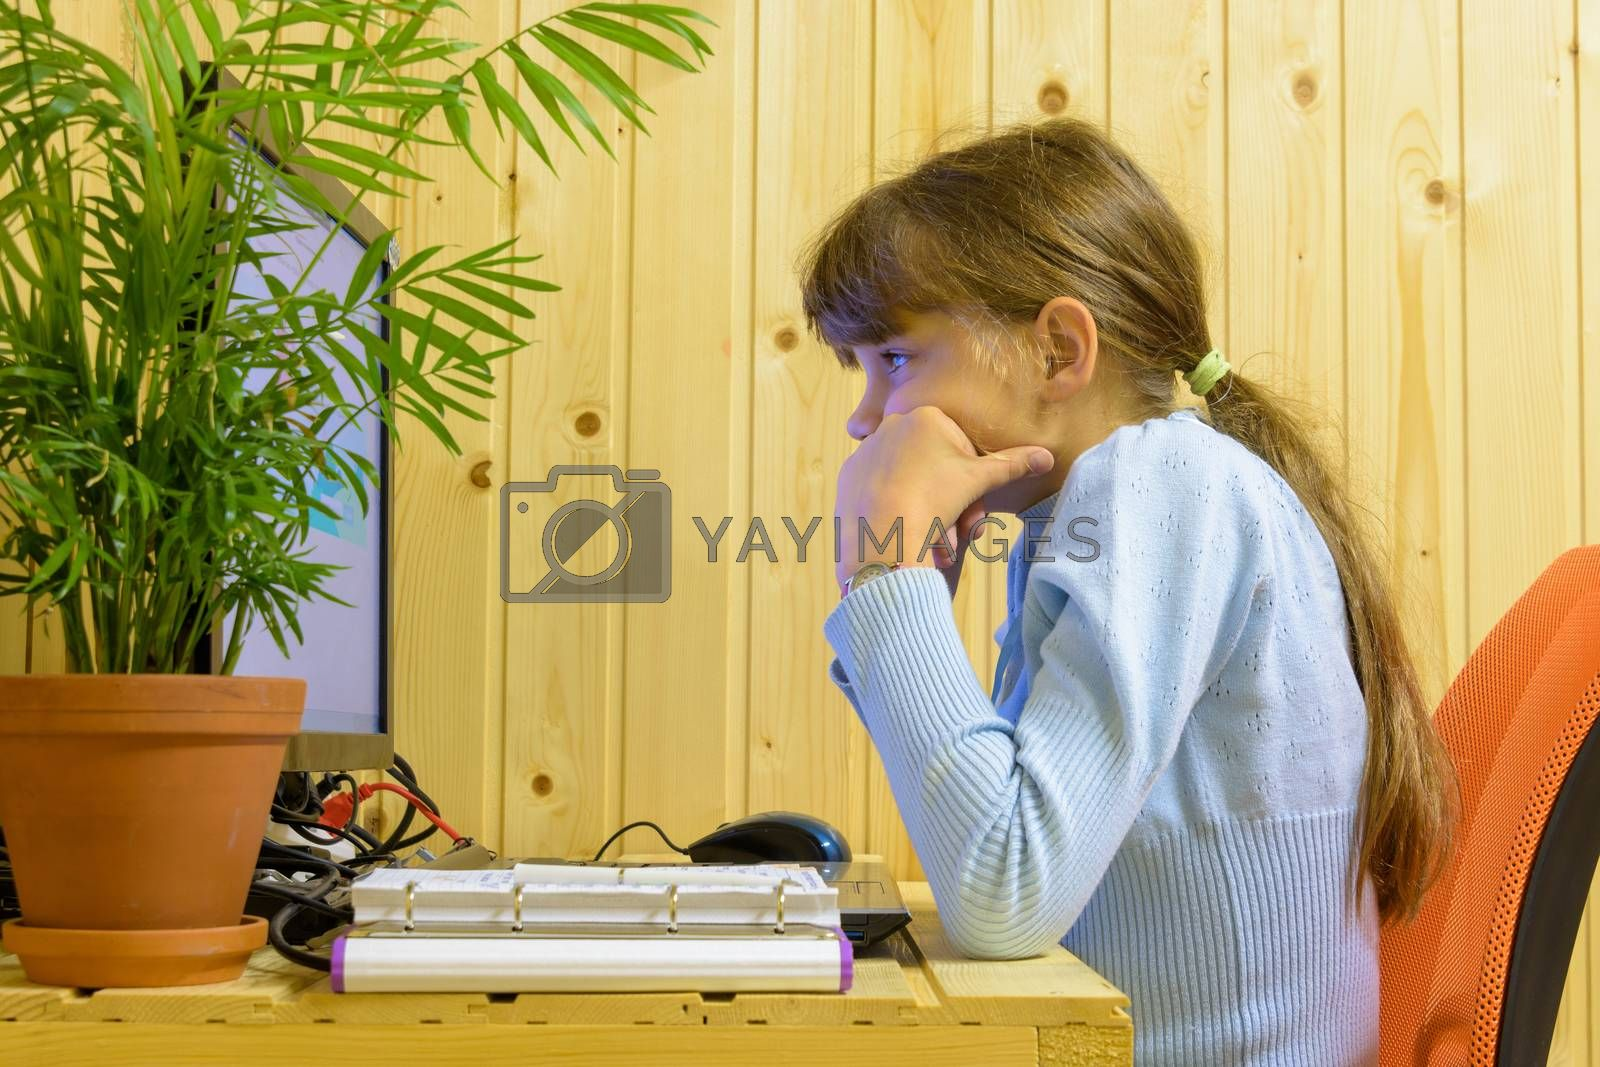 The girl thought hard while solving a problem in the computer